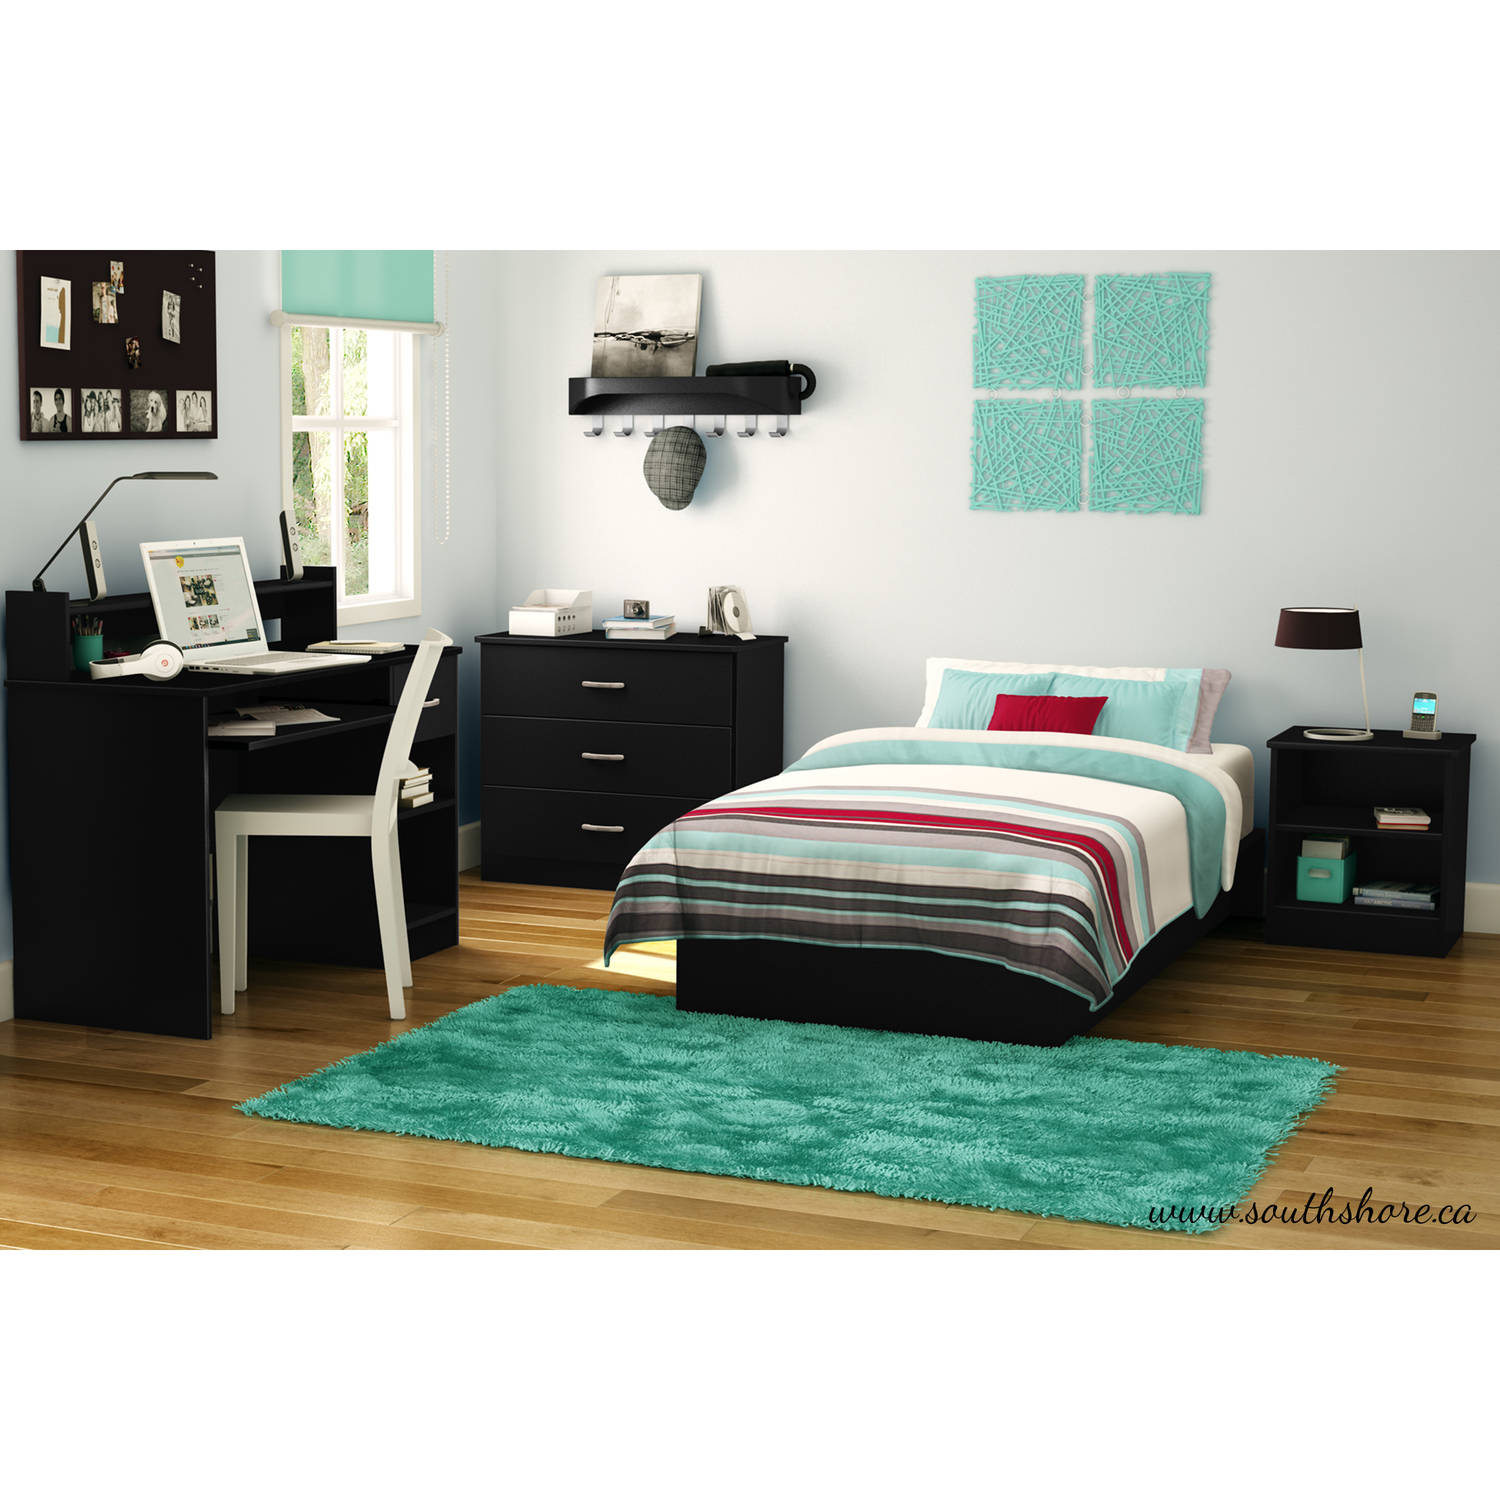 Nice South Shore Smart Basics Twin Platform Bed U0026 Headboard, Black   Walmart.com